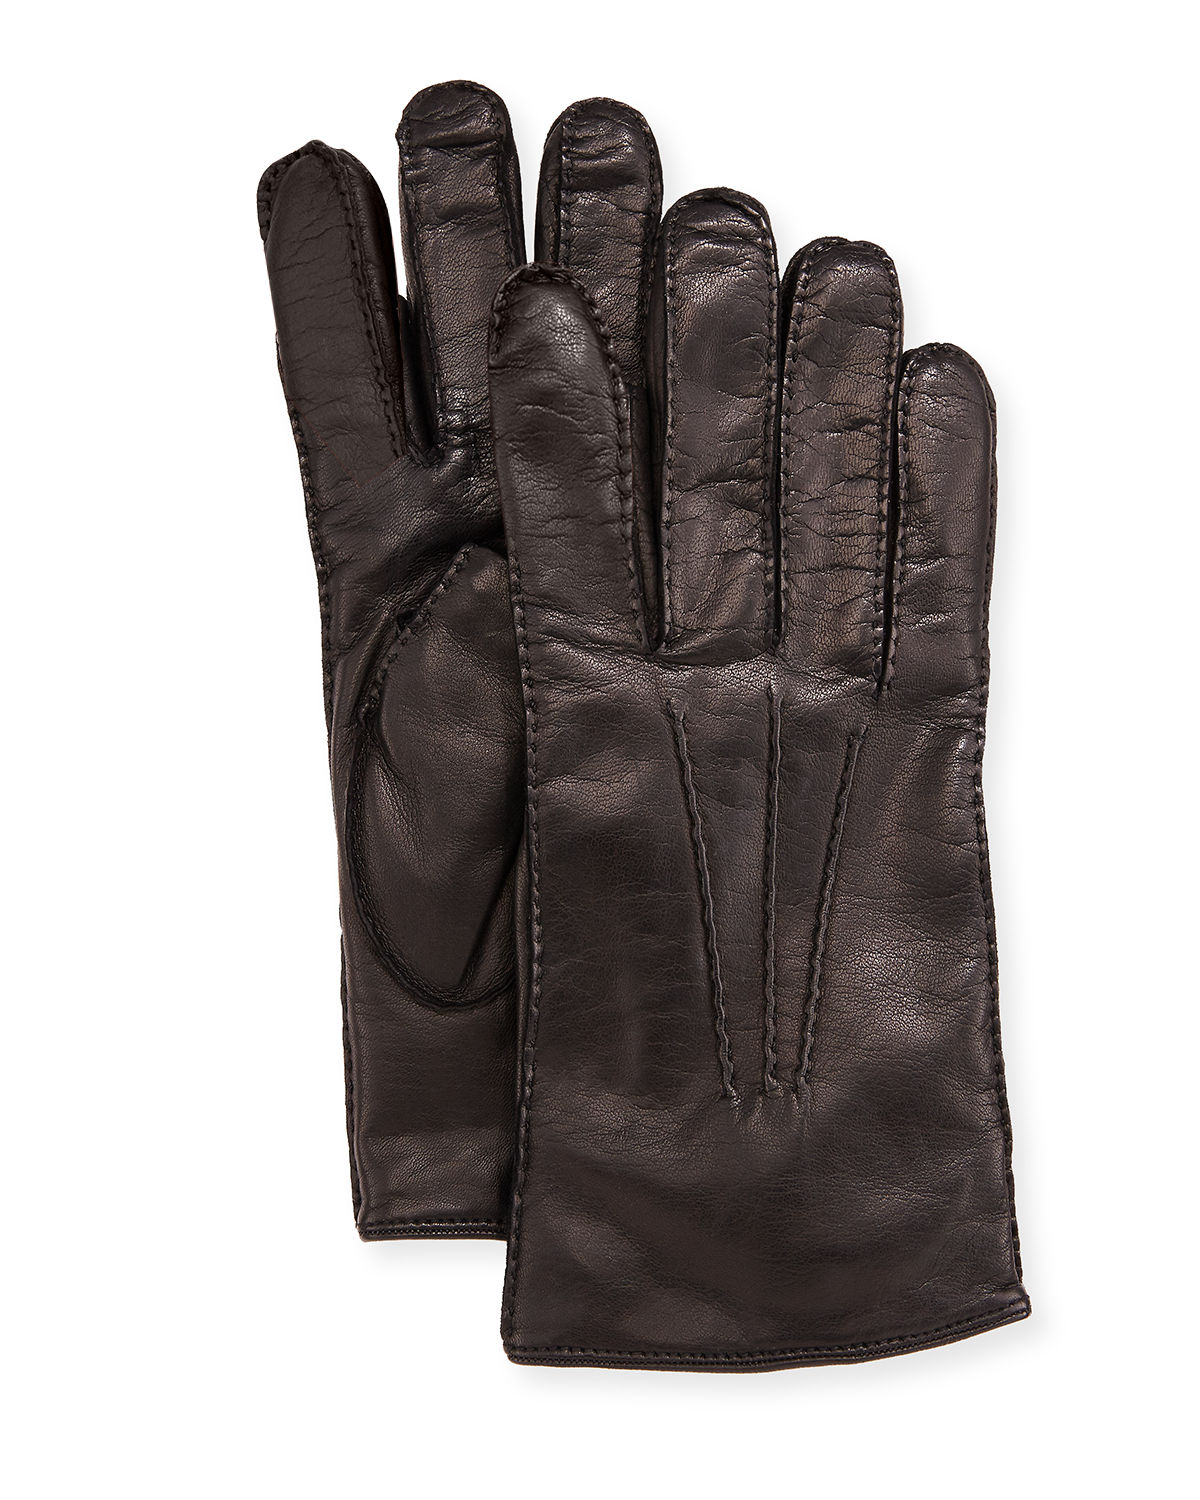 Three-Cord Napa Leather Gloves